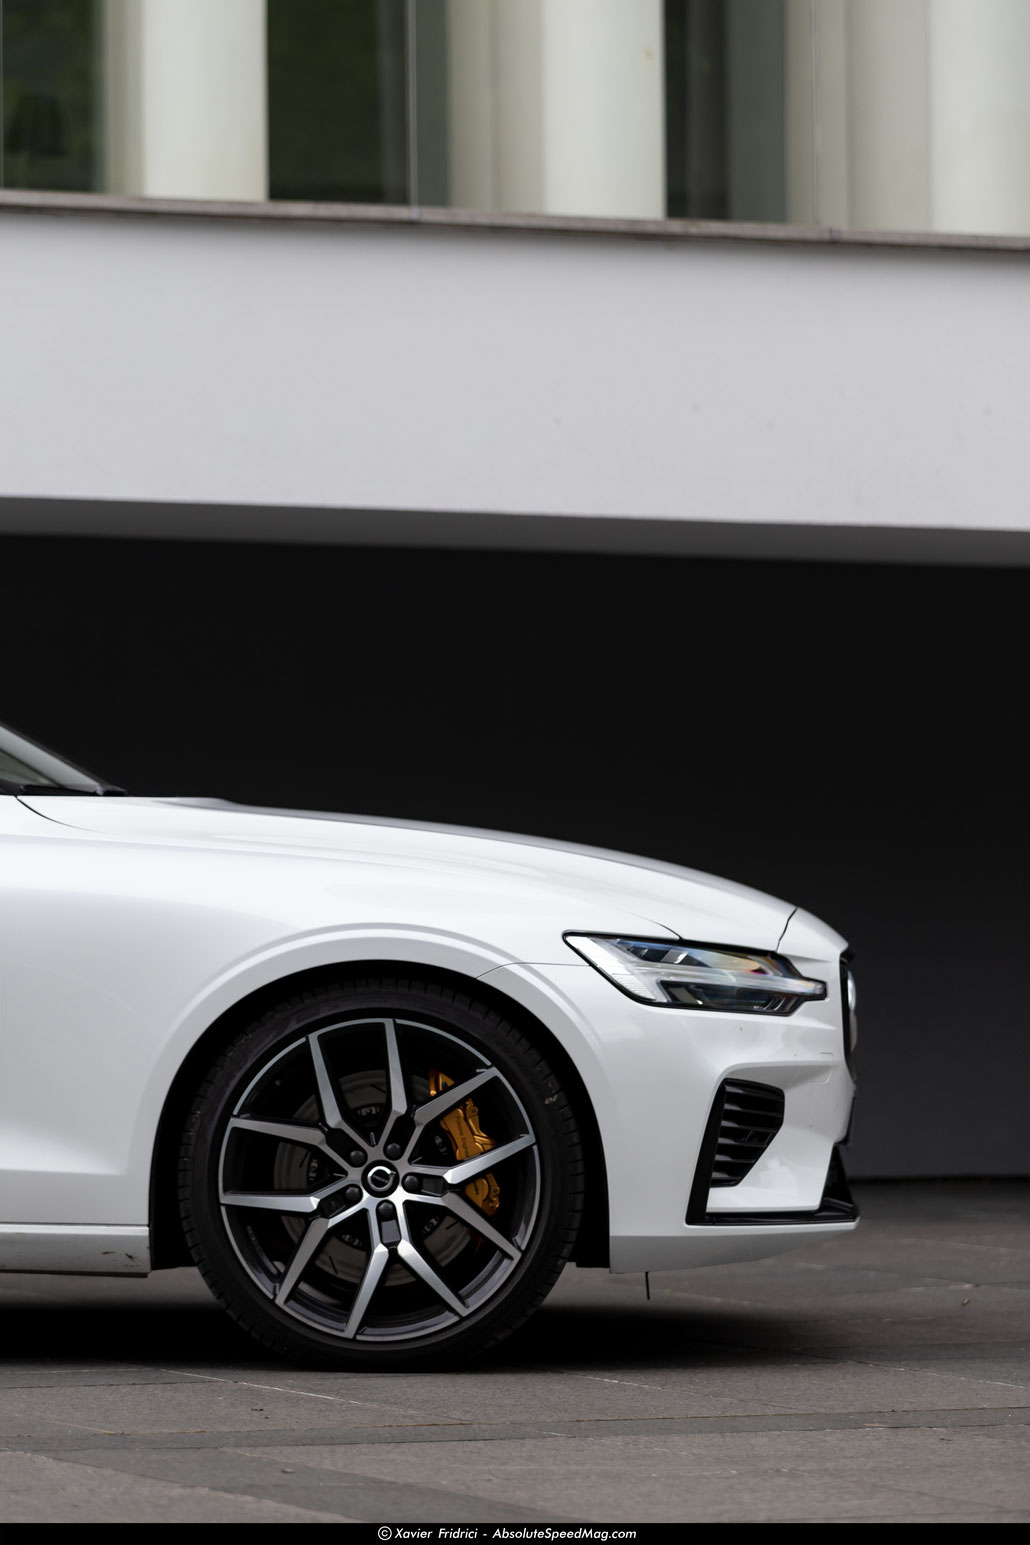 Volvo V6O Polestar Engineered 2020